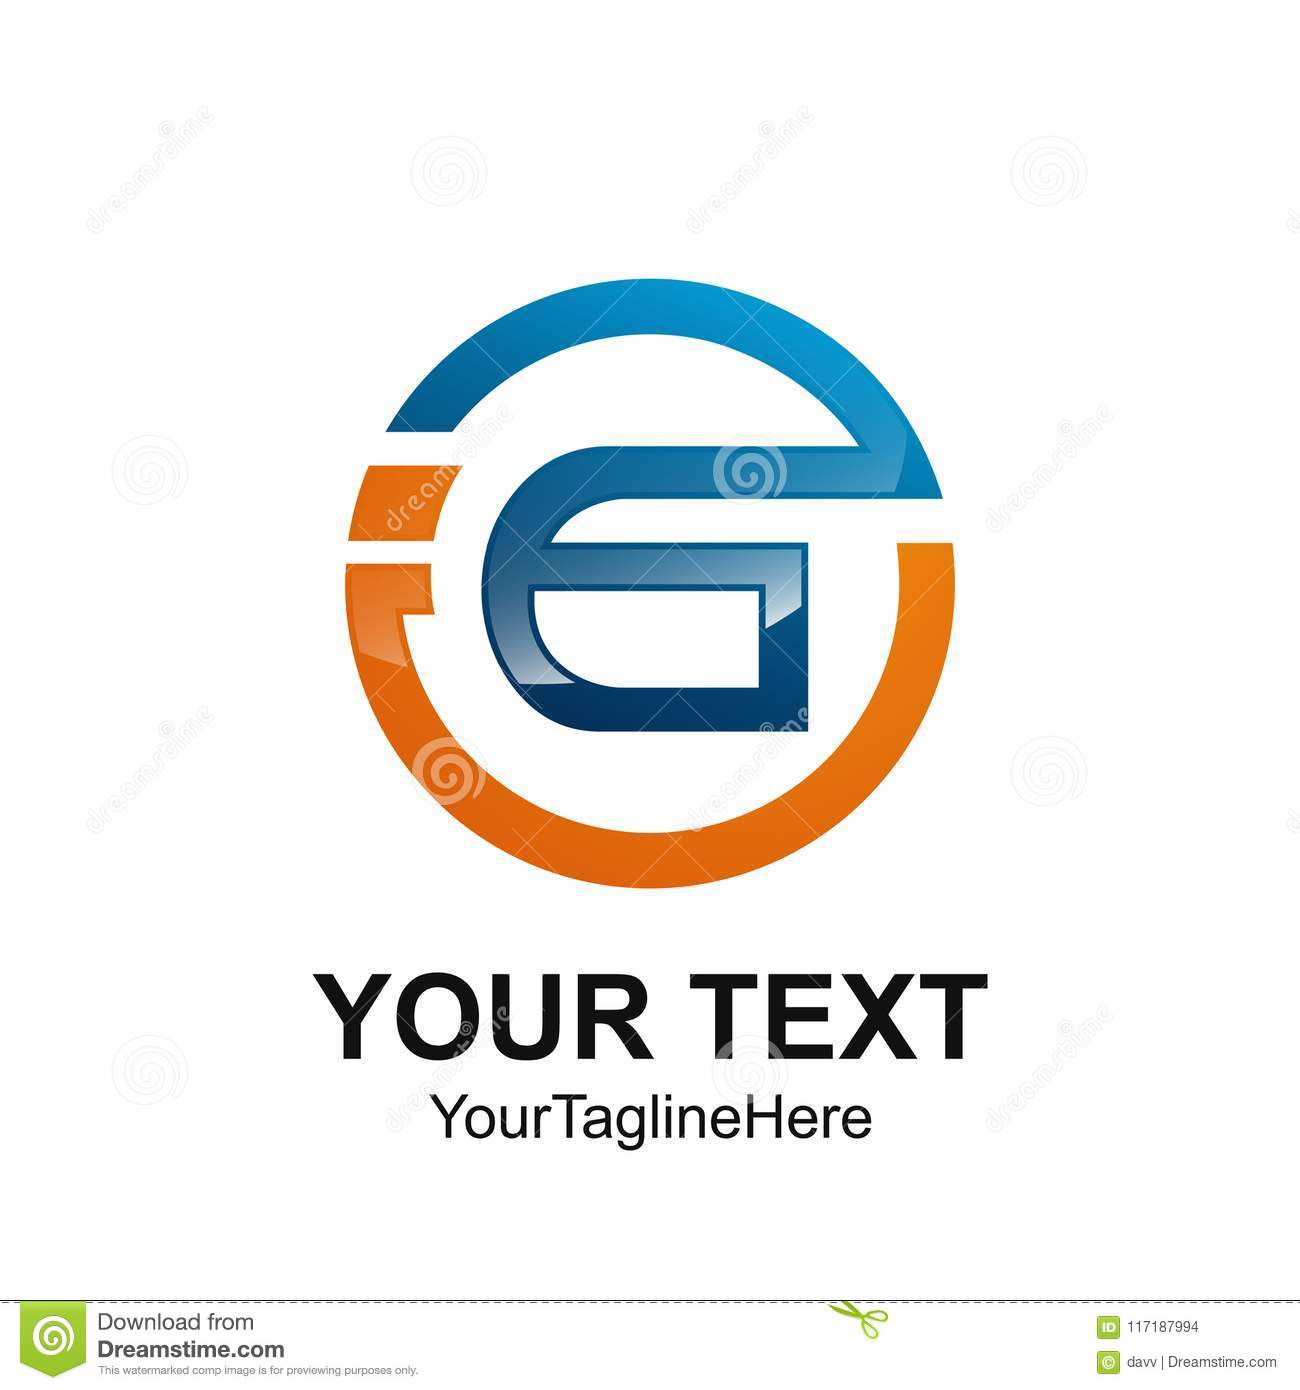 initial letter gi or ig logo template colored orange blue circle